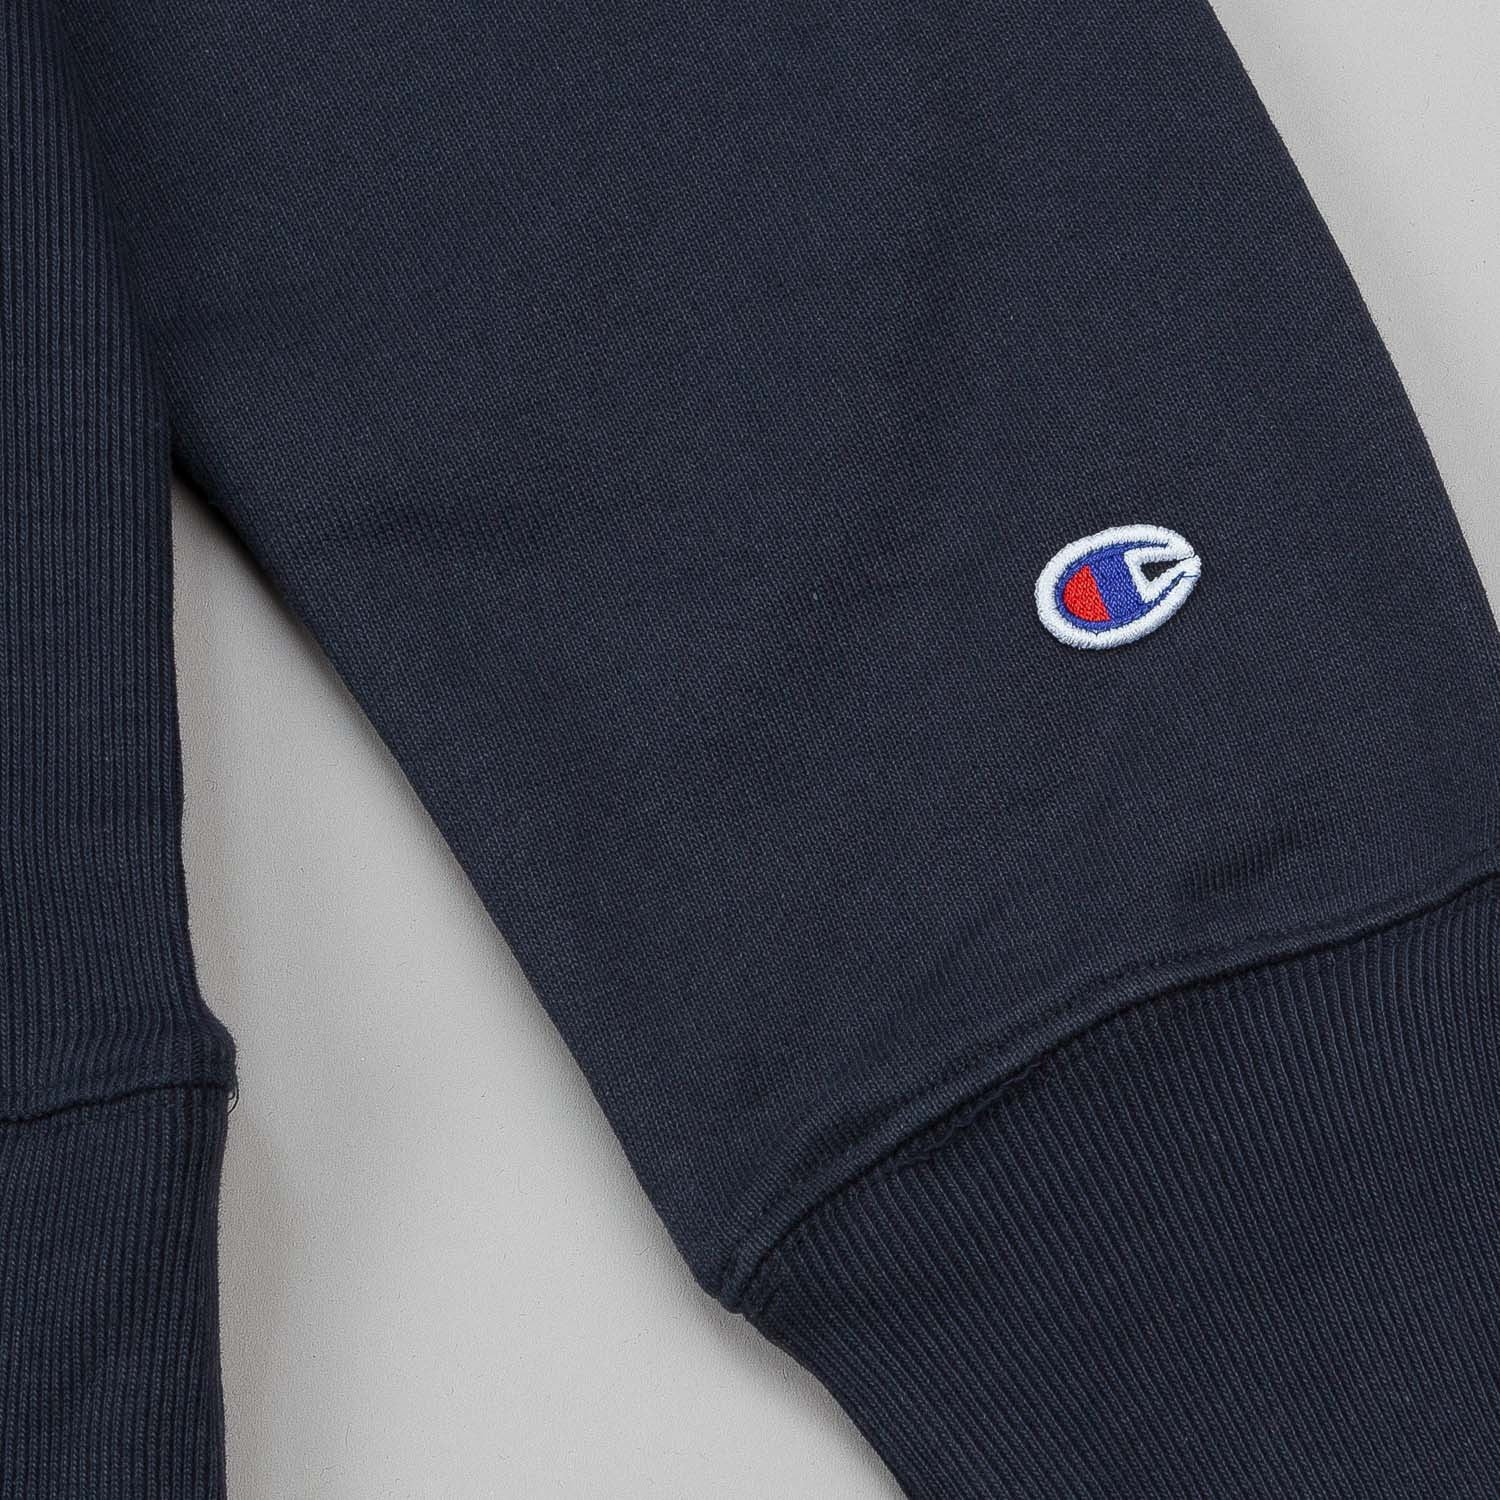 Champion Large C Applique Reverse Weave Crew Neck Sweatshirt - Navy